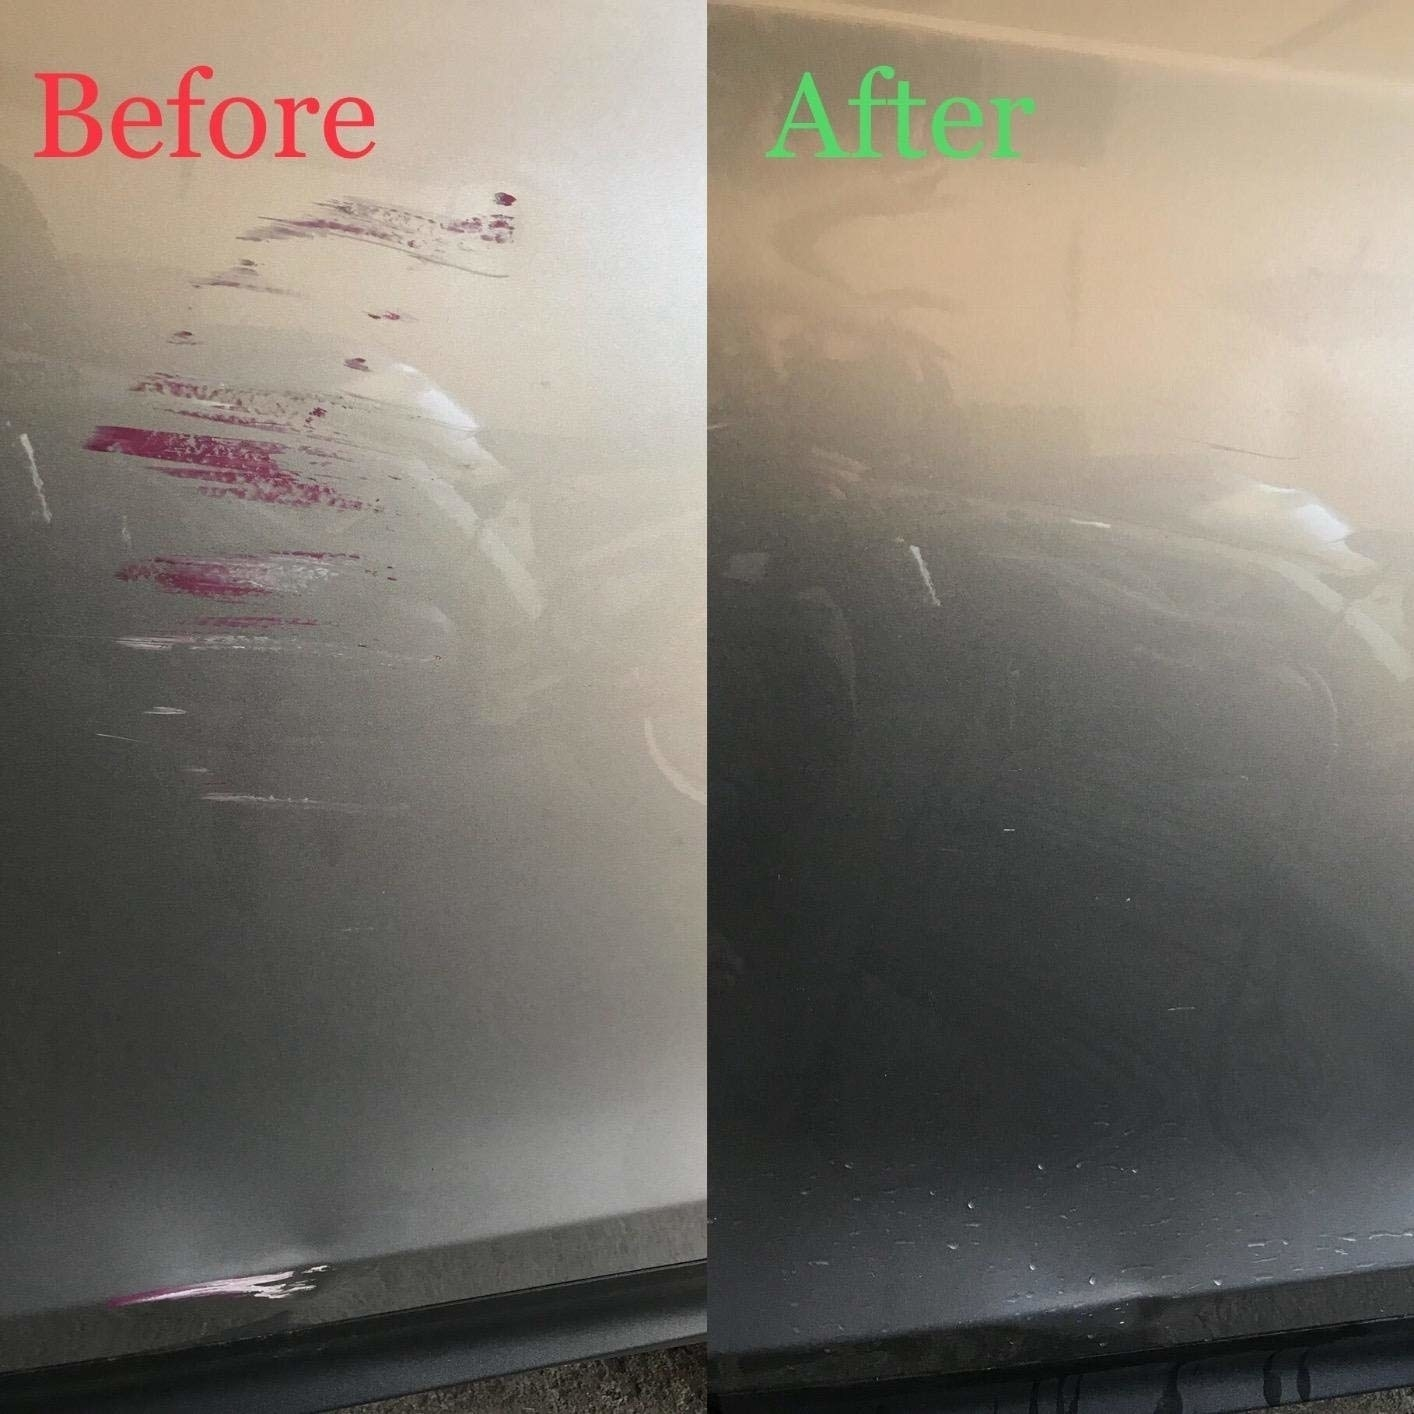 A scratched-up car door before (with remnants of another car's paint) and the same door after with only a few minor scratches left